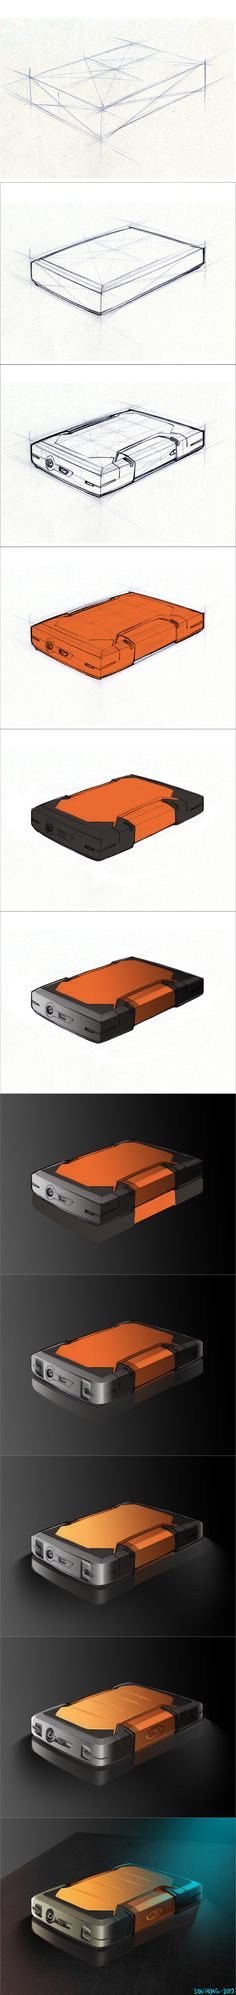 Photoshop Rendering Tutorial: LaCie External Drive by dou-hong